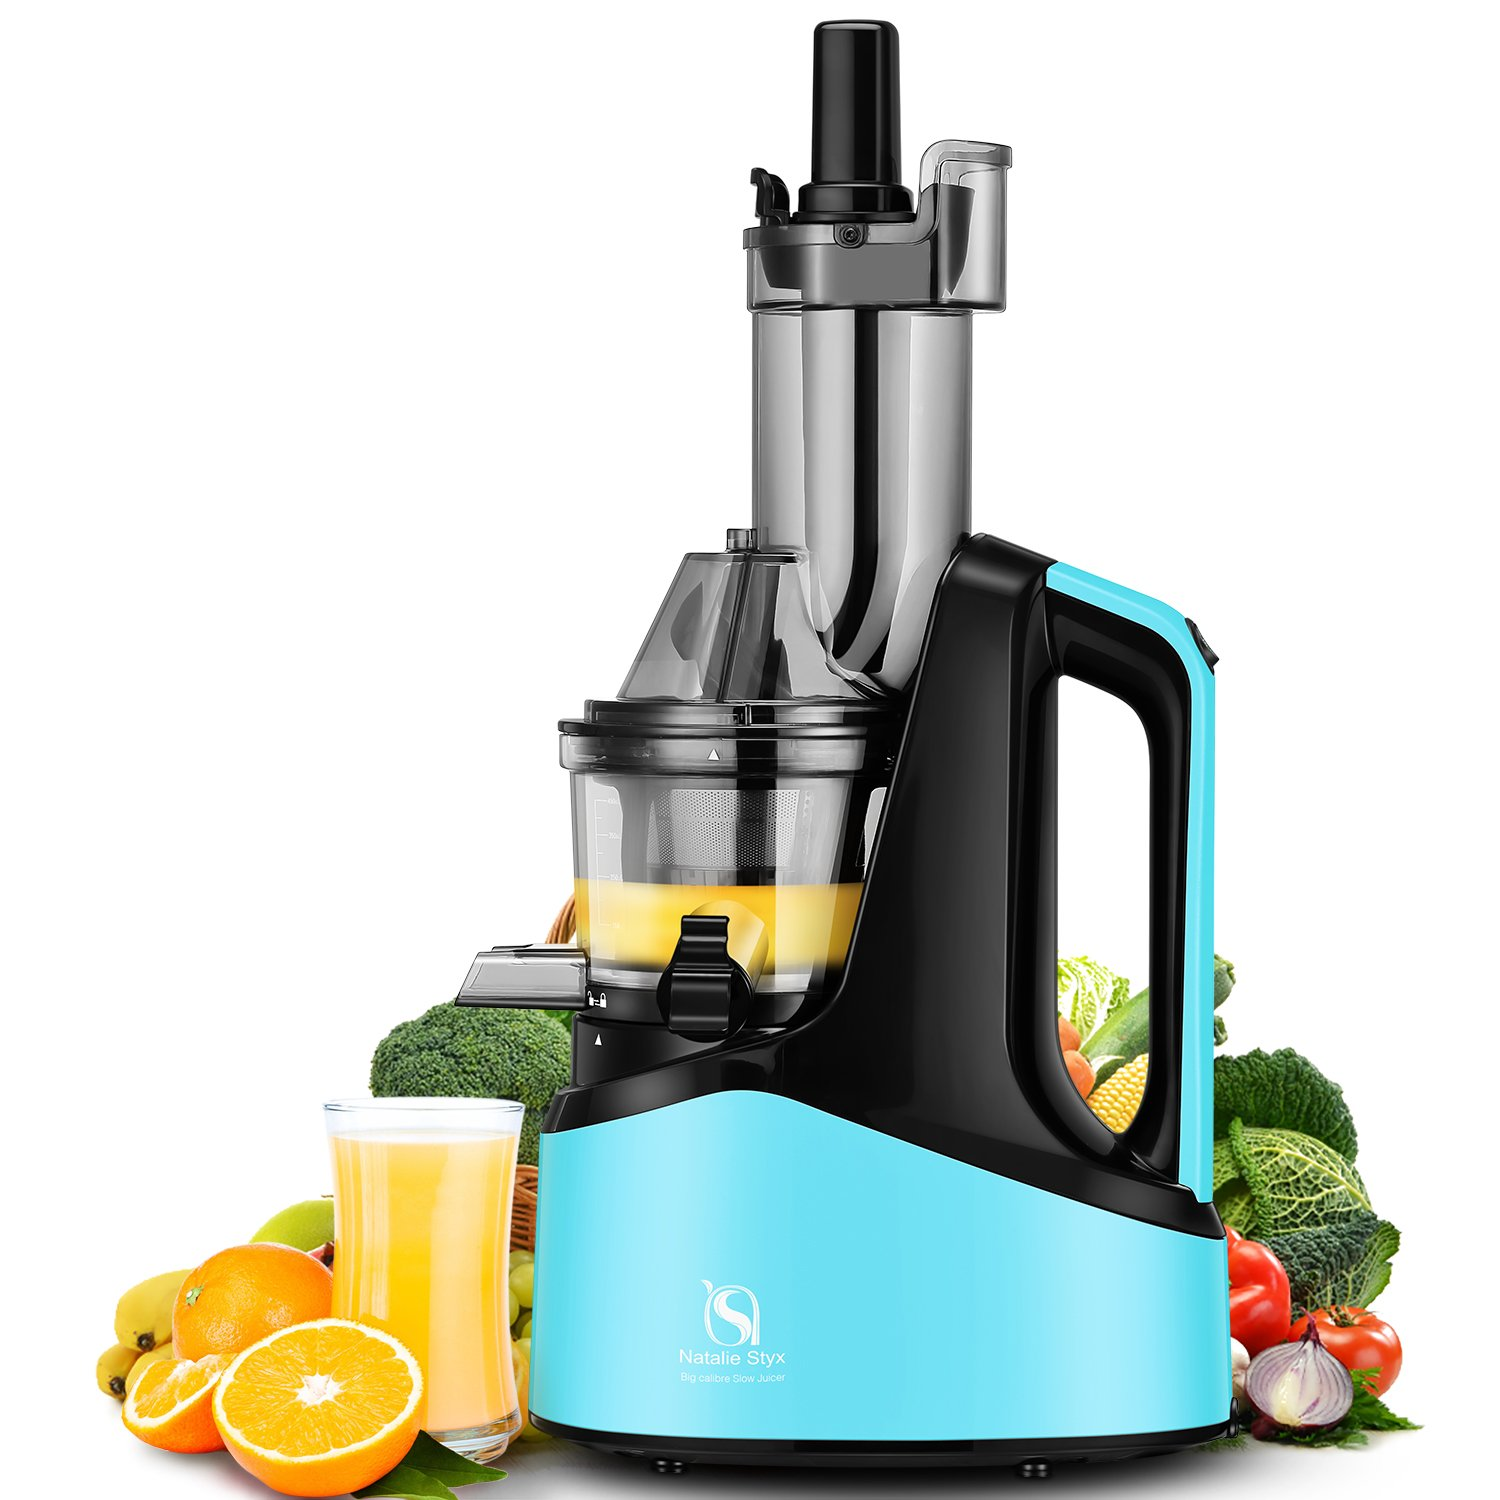 Natalie Styx Juicer Slow Masticating Juicer Extractor, 3'' Wide Chute Anti-Oxidation Cold Press Juicer , 240W AC Motor, with Juice Jug and Brush, High Nutrient Fruit and Vegetable Juice, Blue